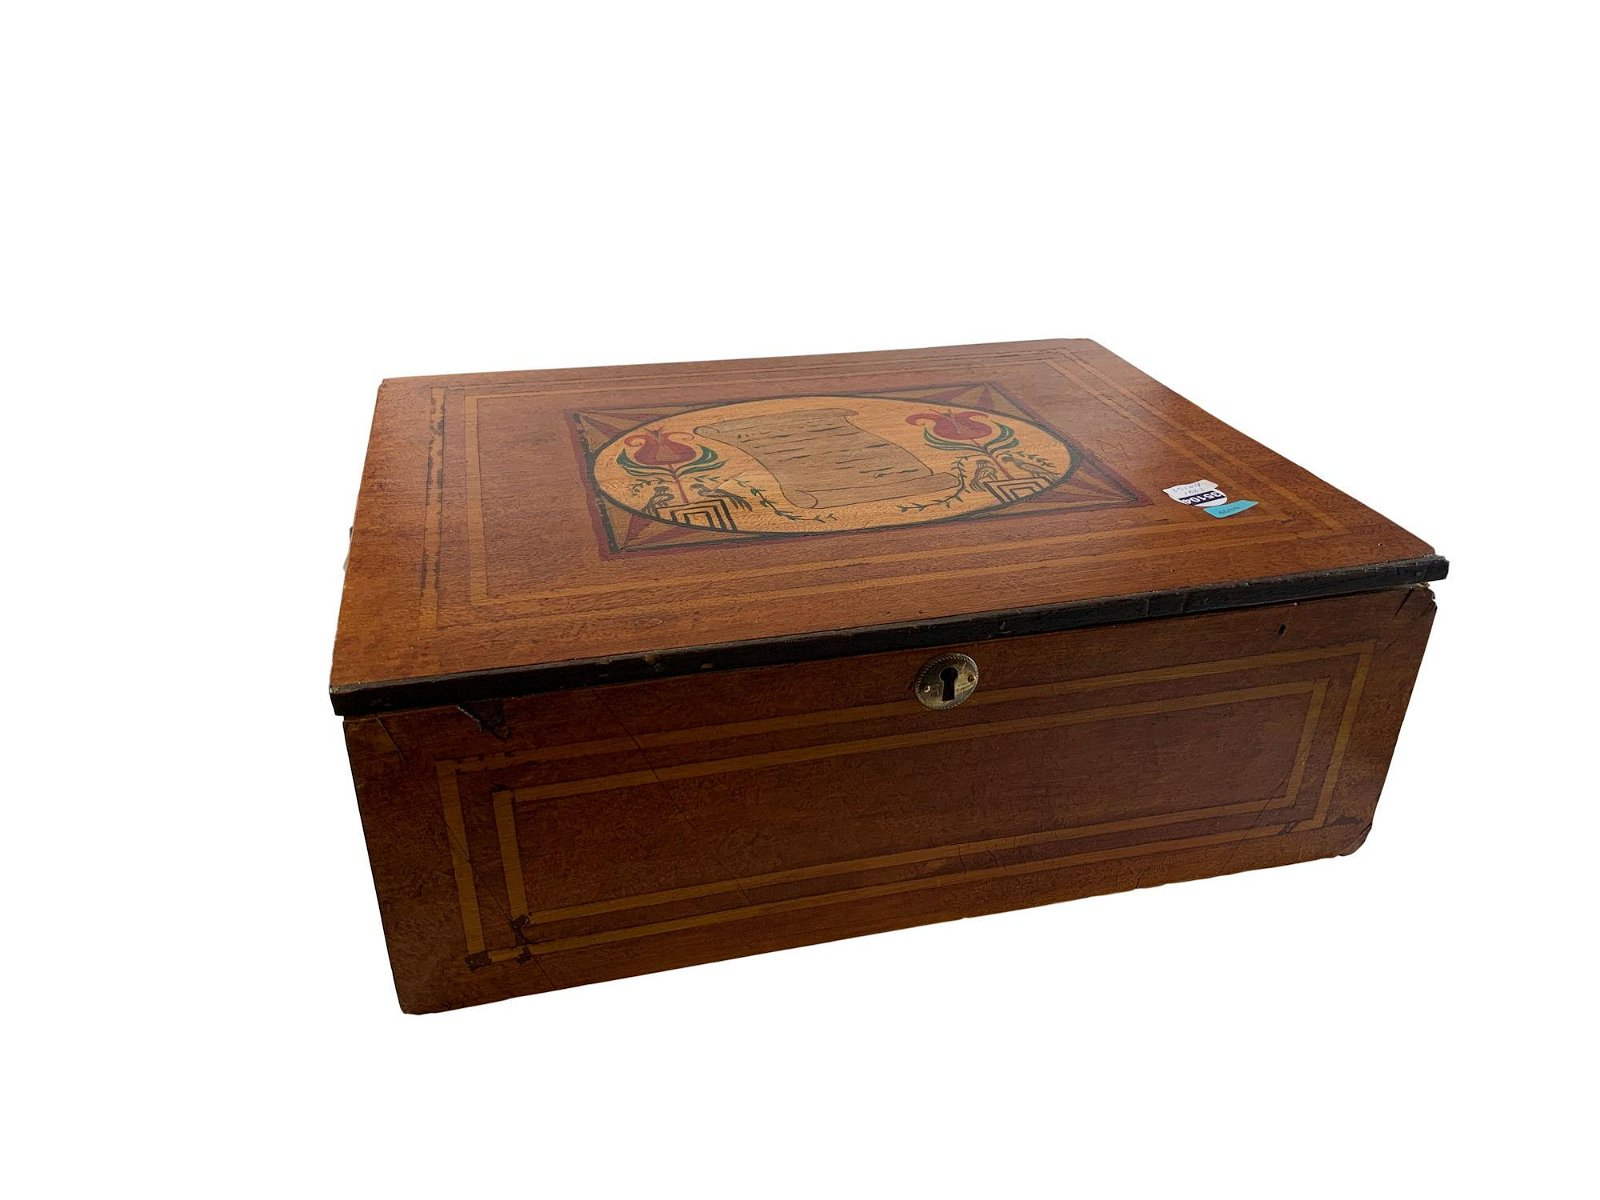 MAHOGANY LAP DESK WITH MAPLE INLAY AND DECORATED TOP,